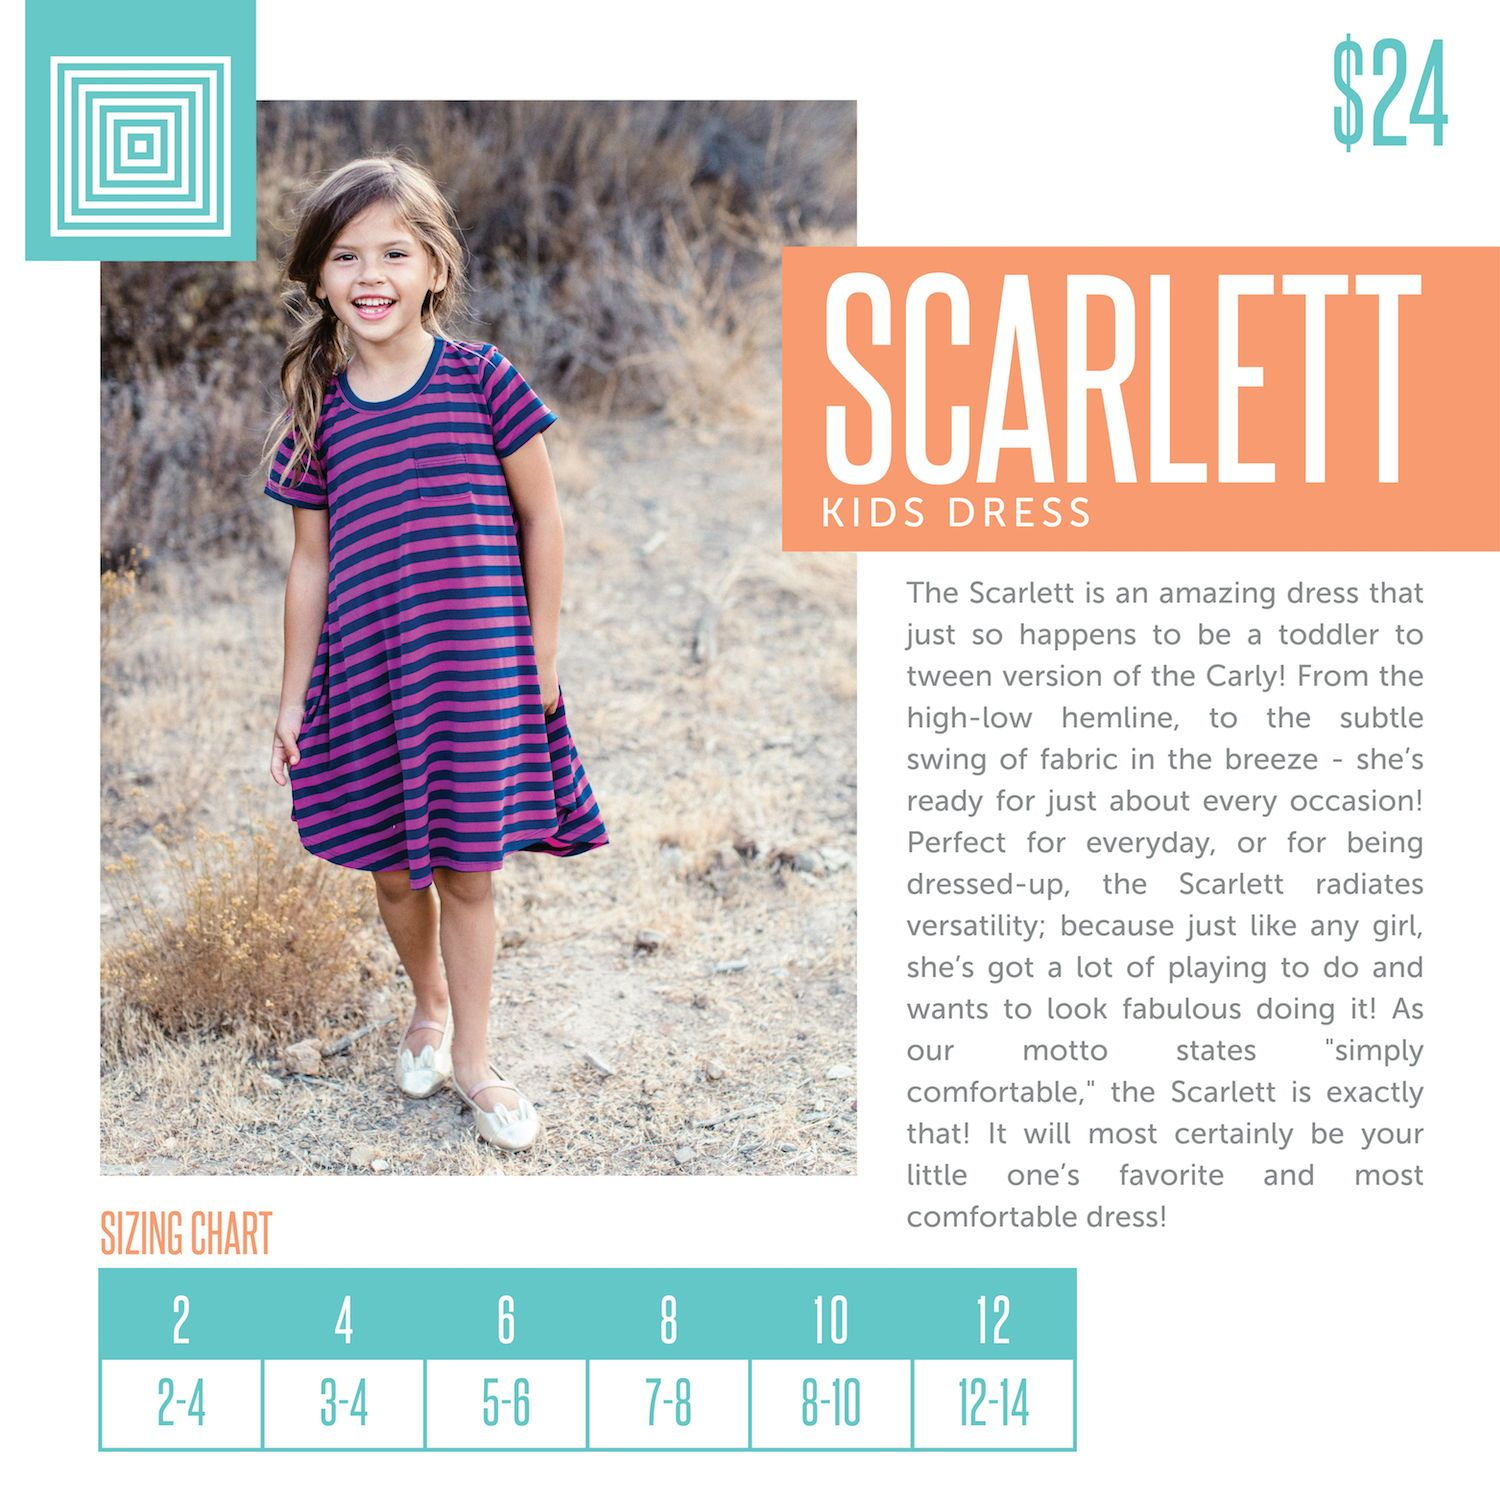 ec402ace7 Kids LuLaRoe Scarlett Dress Size Chart including 2018 updated pricing. # lularoe #lularoeretailer